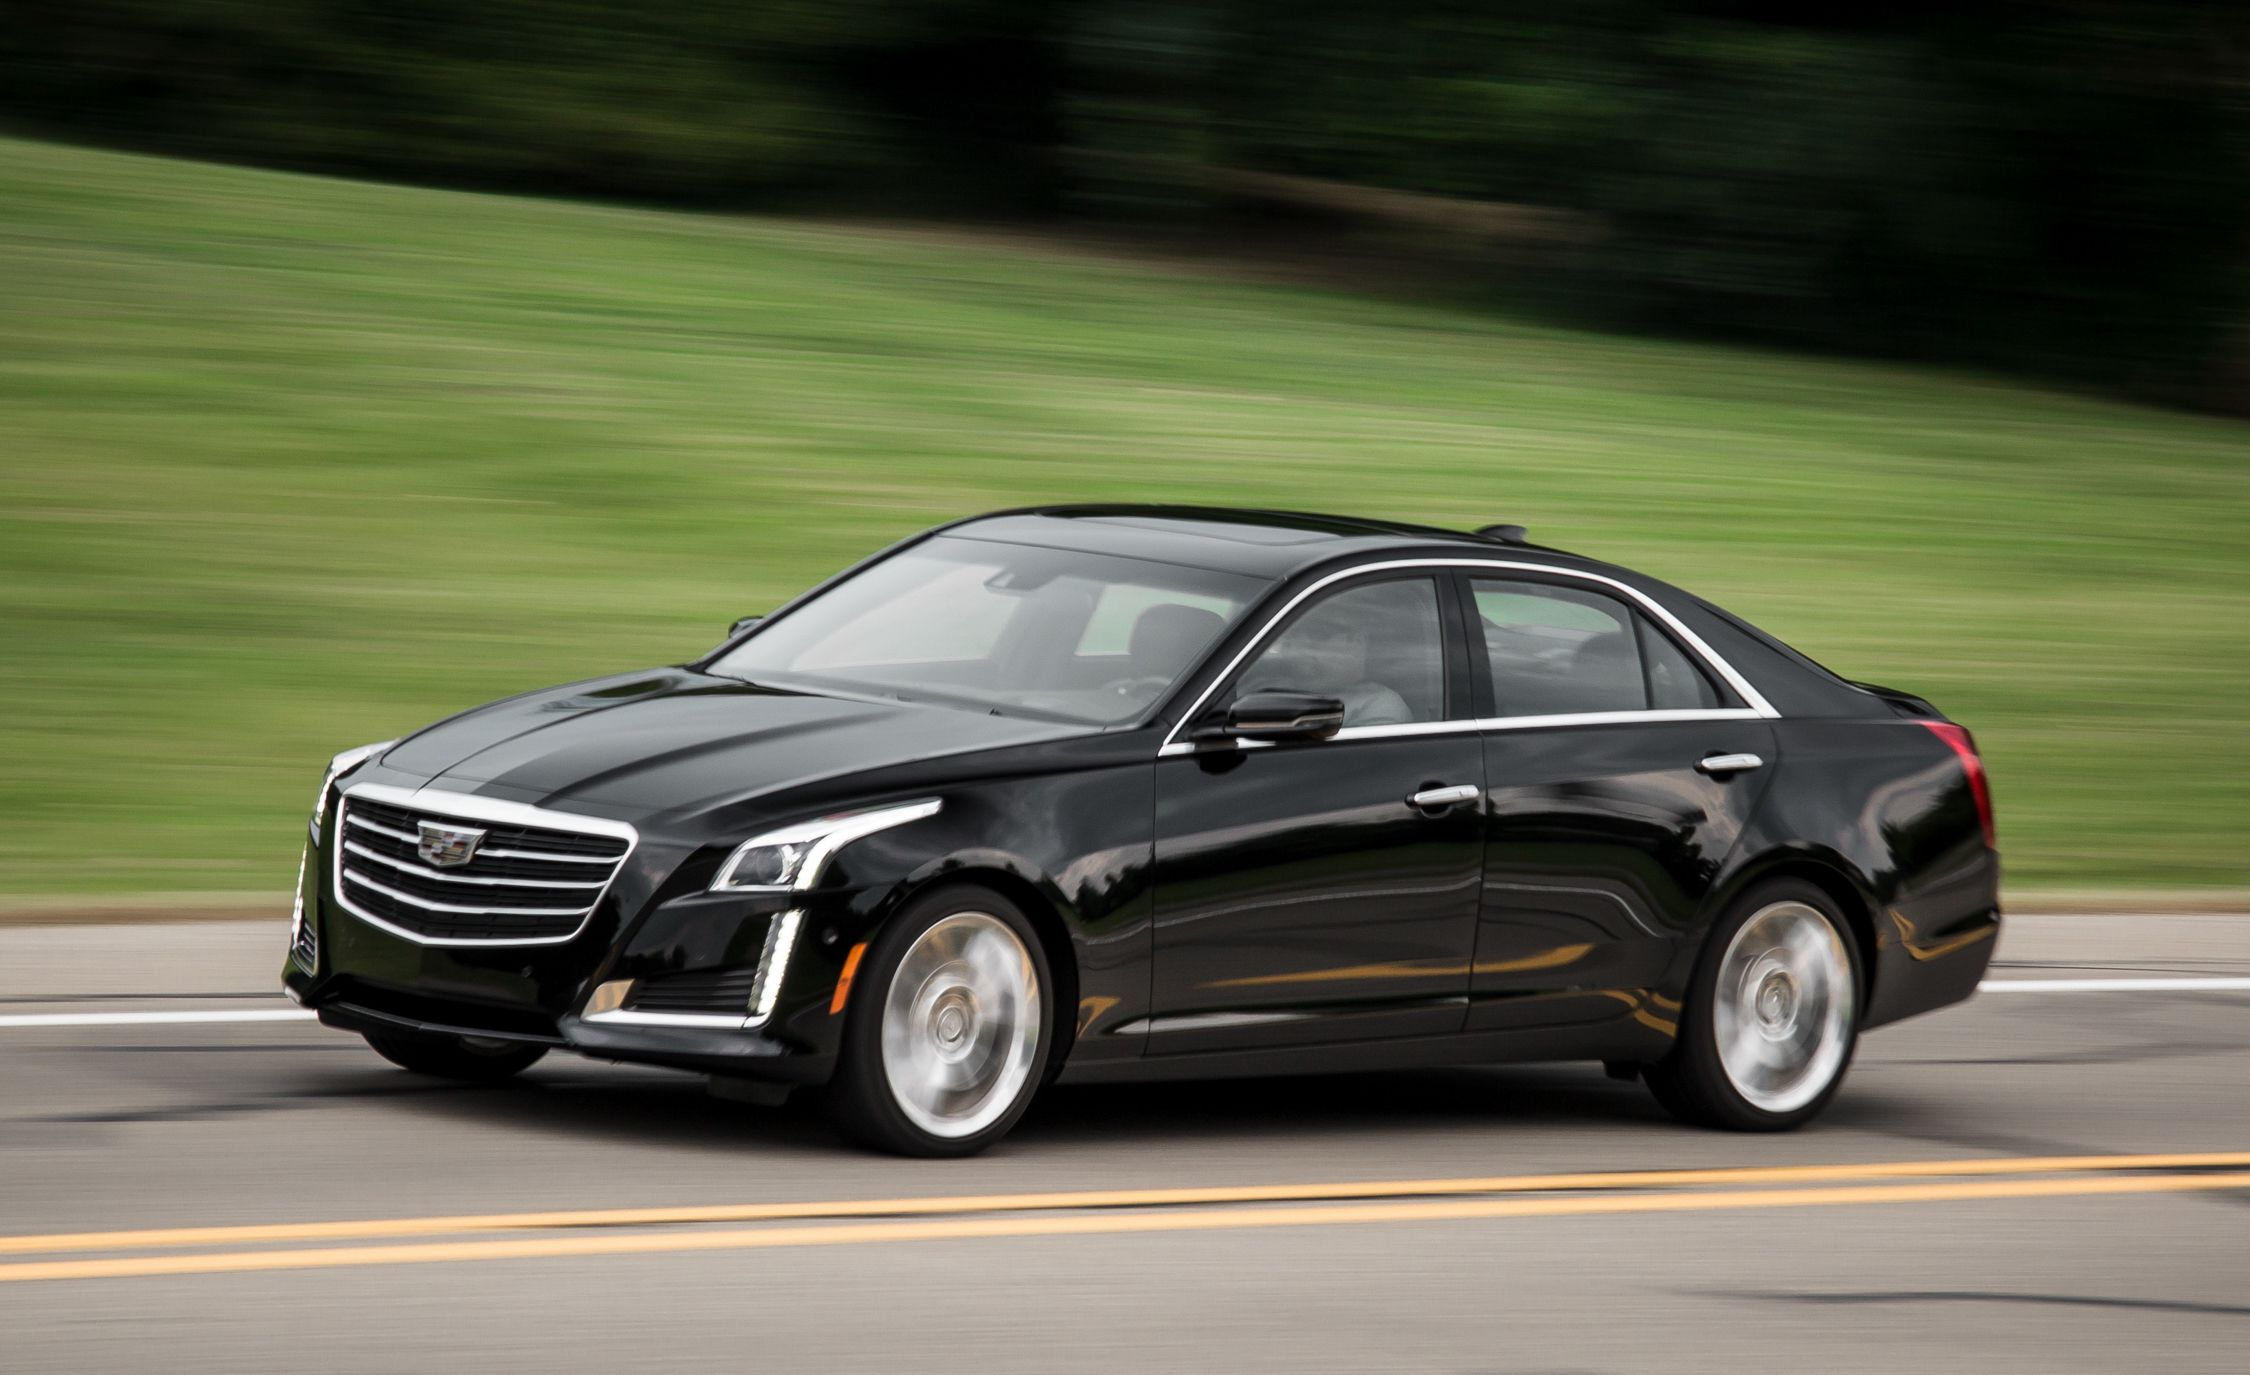 Cadillac 2 0 T >> 2016 Cadillac Cts 2 0t Pictures Photo Gallery Car And Driver